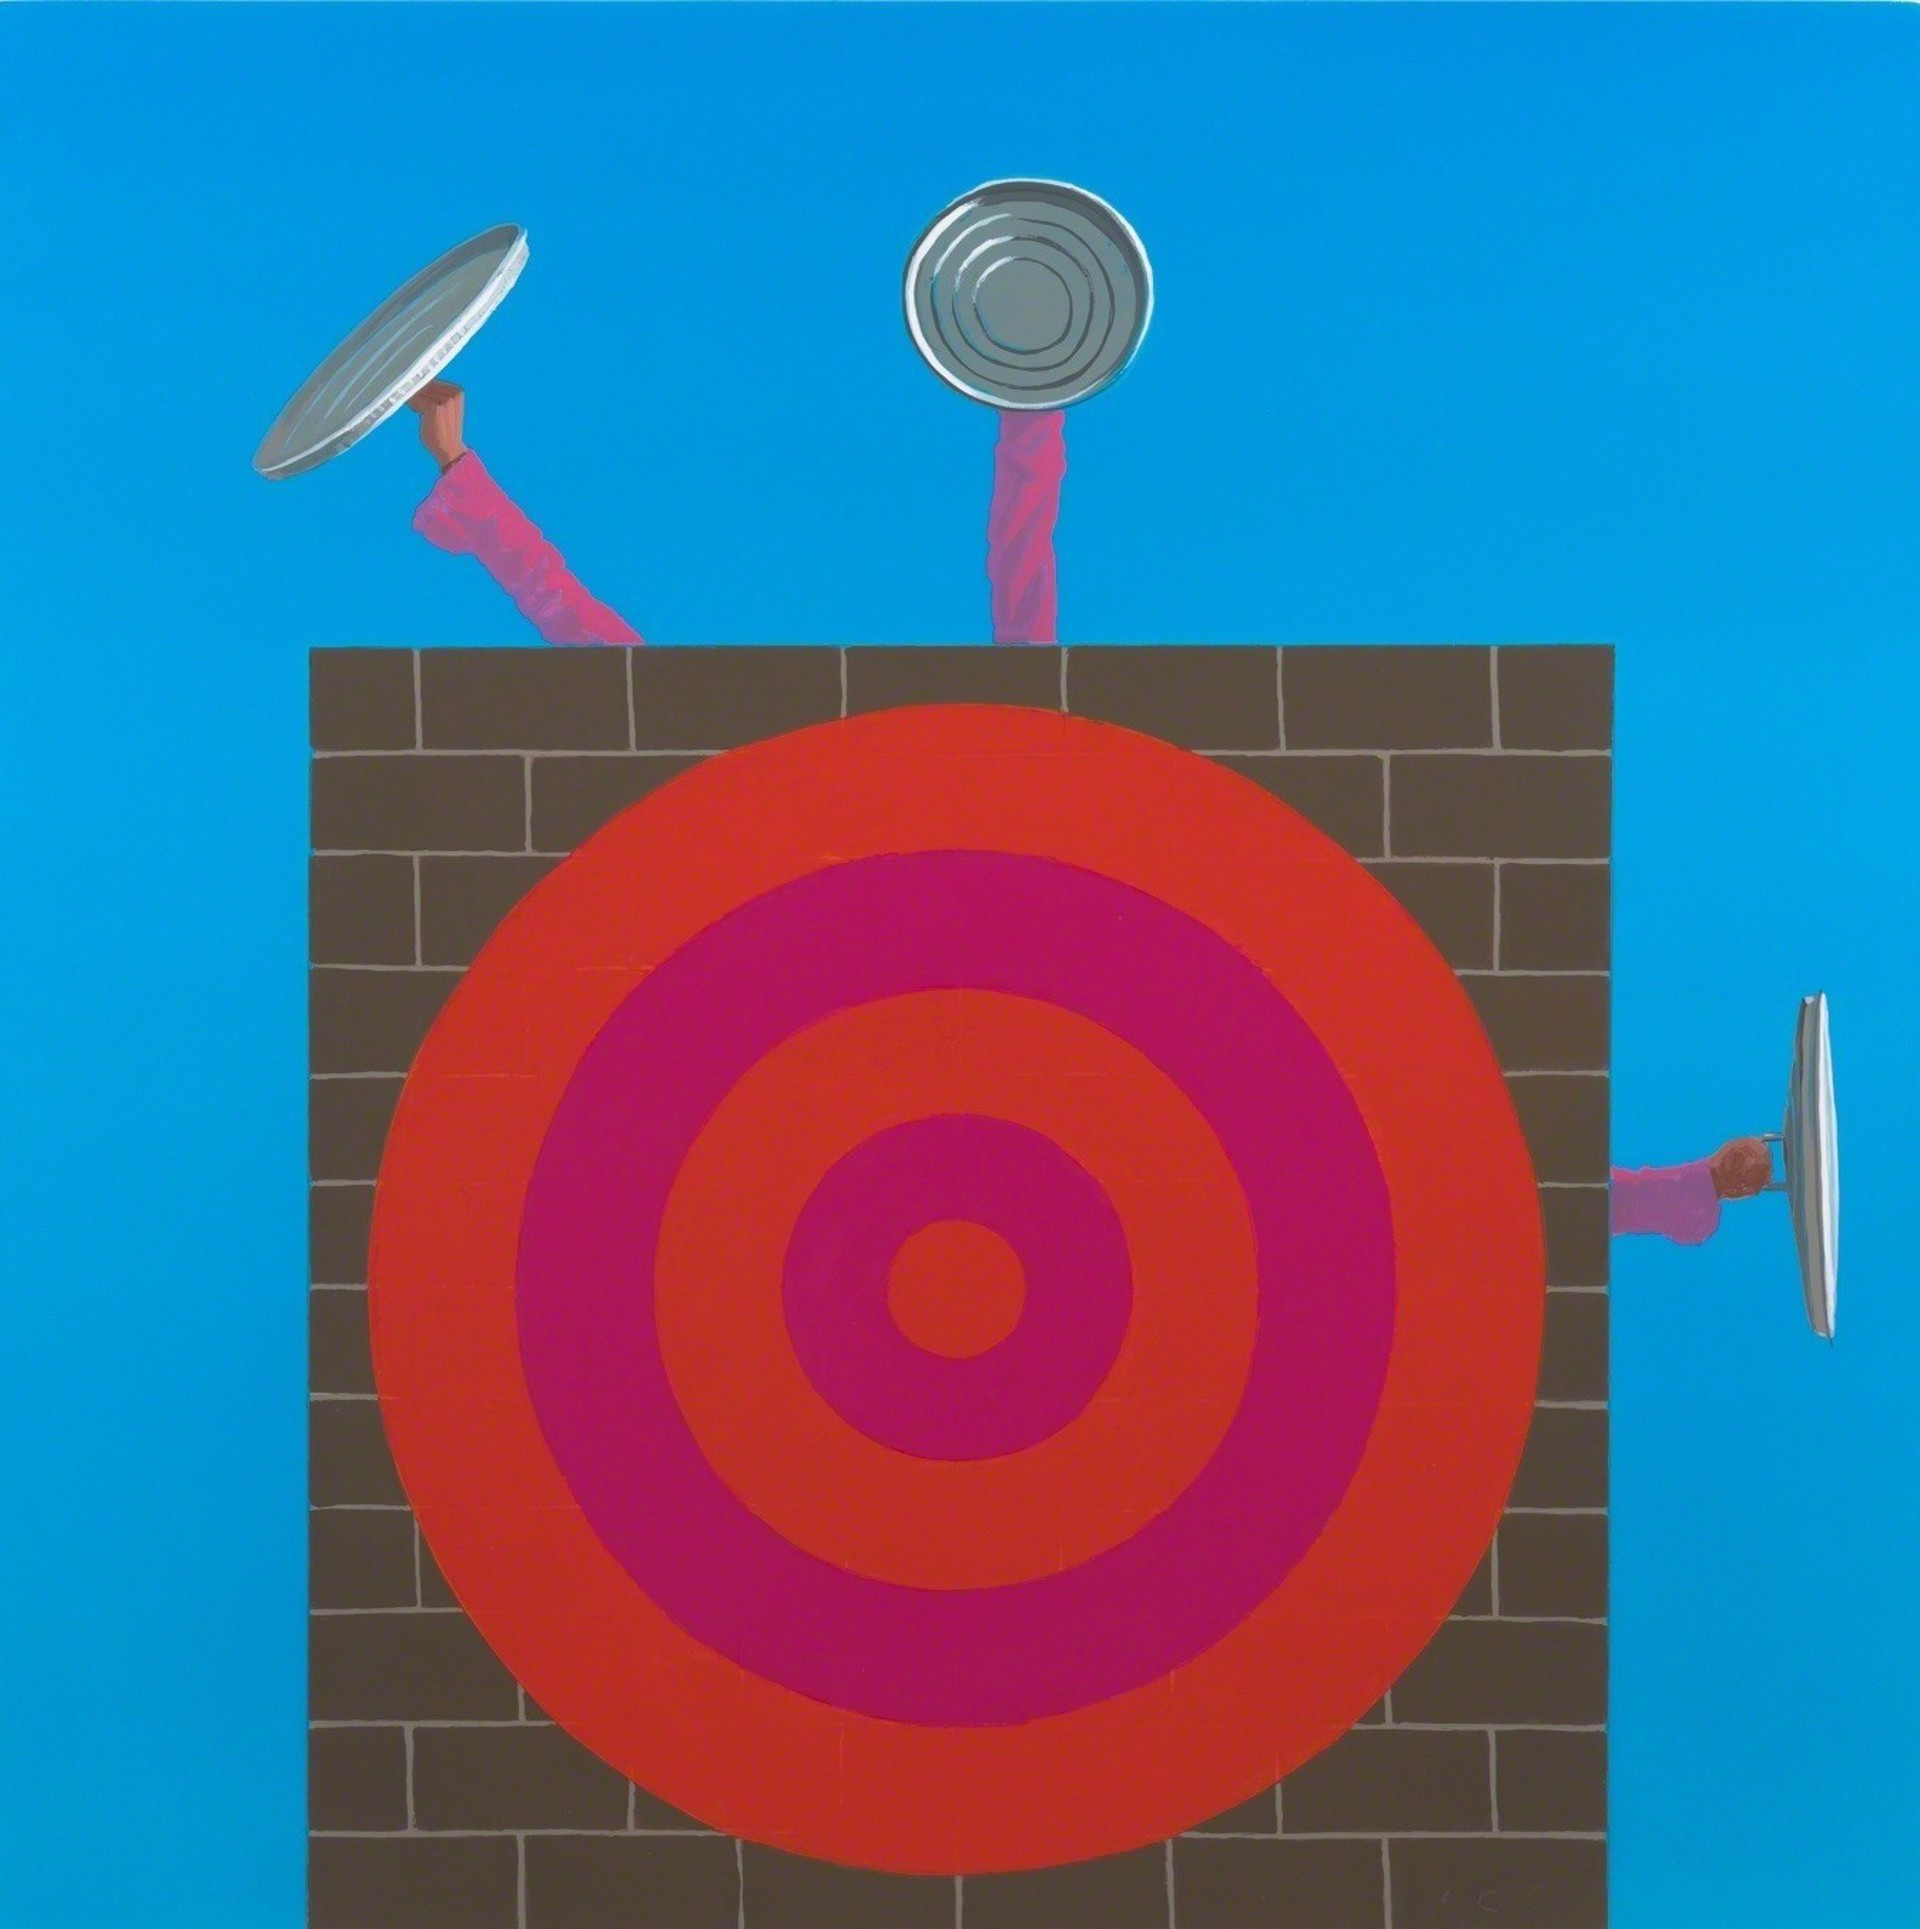 Wall with Target by Vonn Cummings Sumner